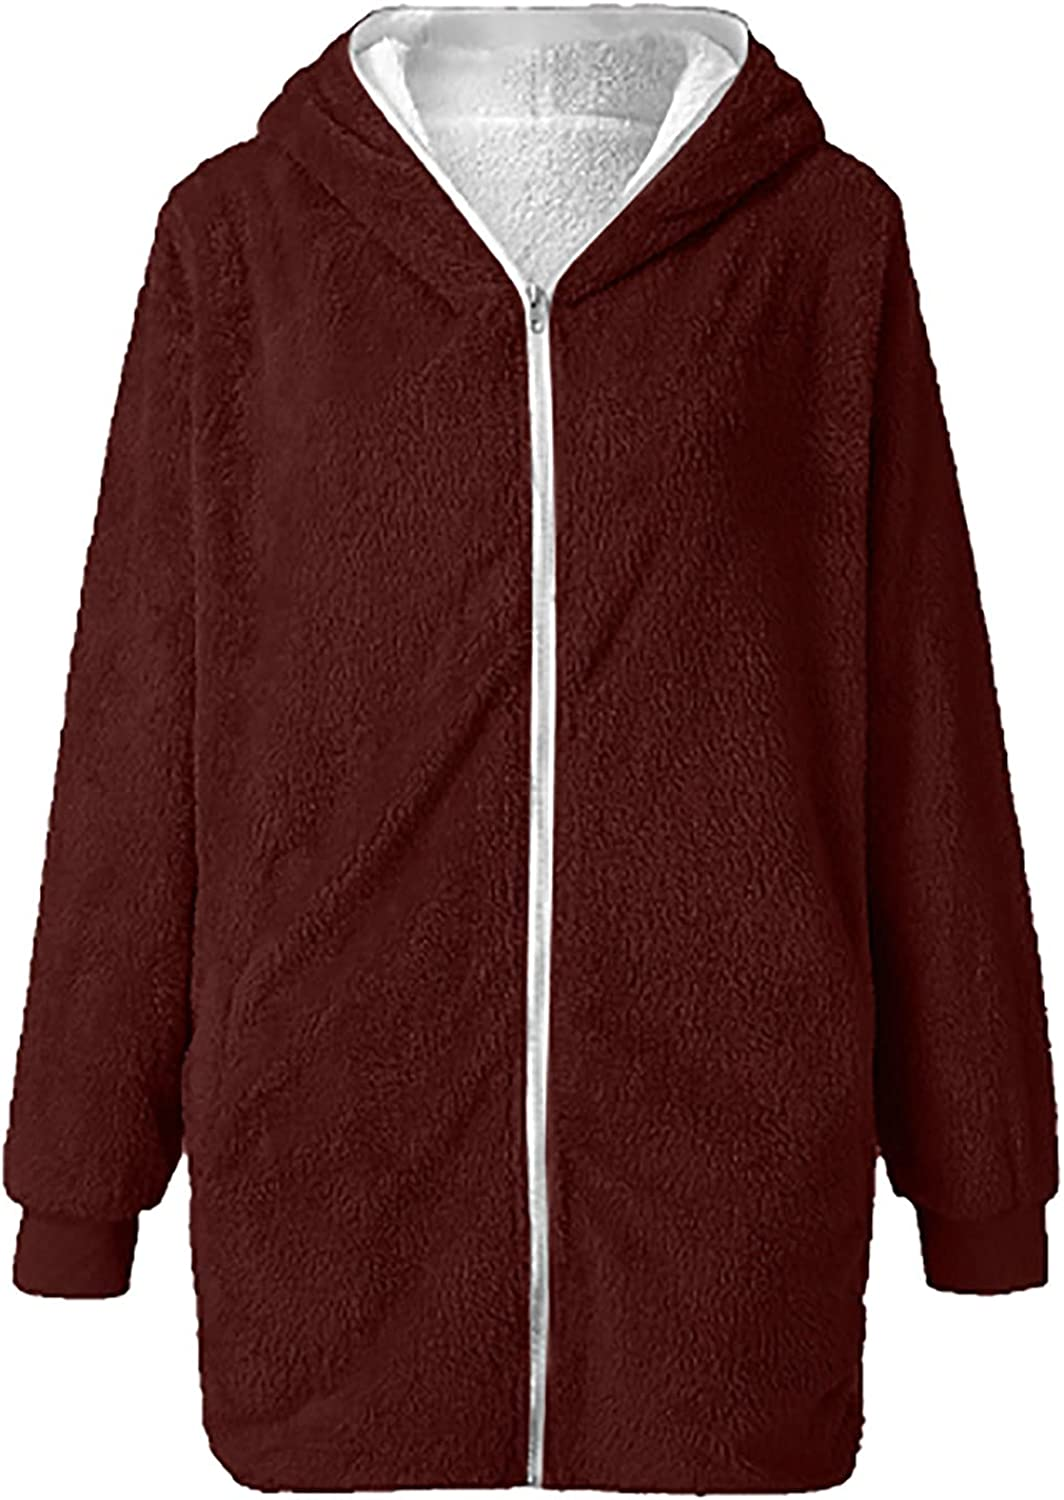 Womens Solid Oversized Zip Down Hooded Coat Cardigans Outwear With Pocket Raincoat